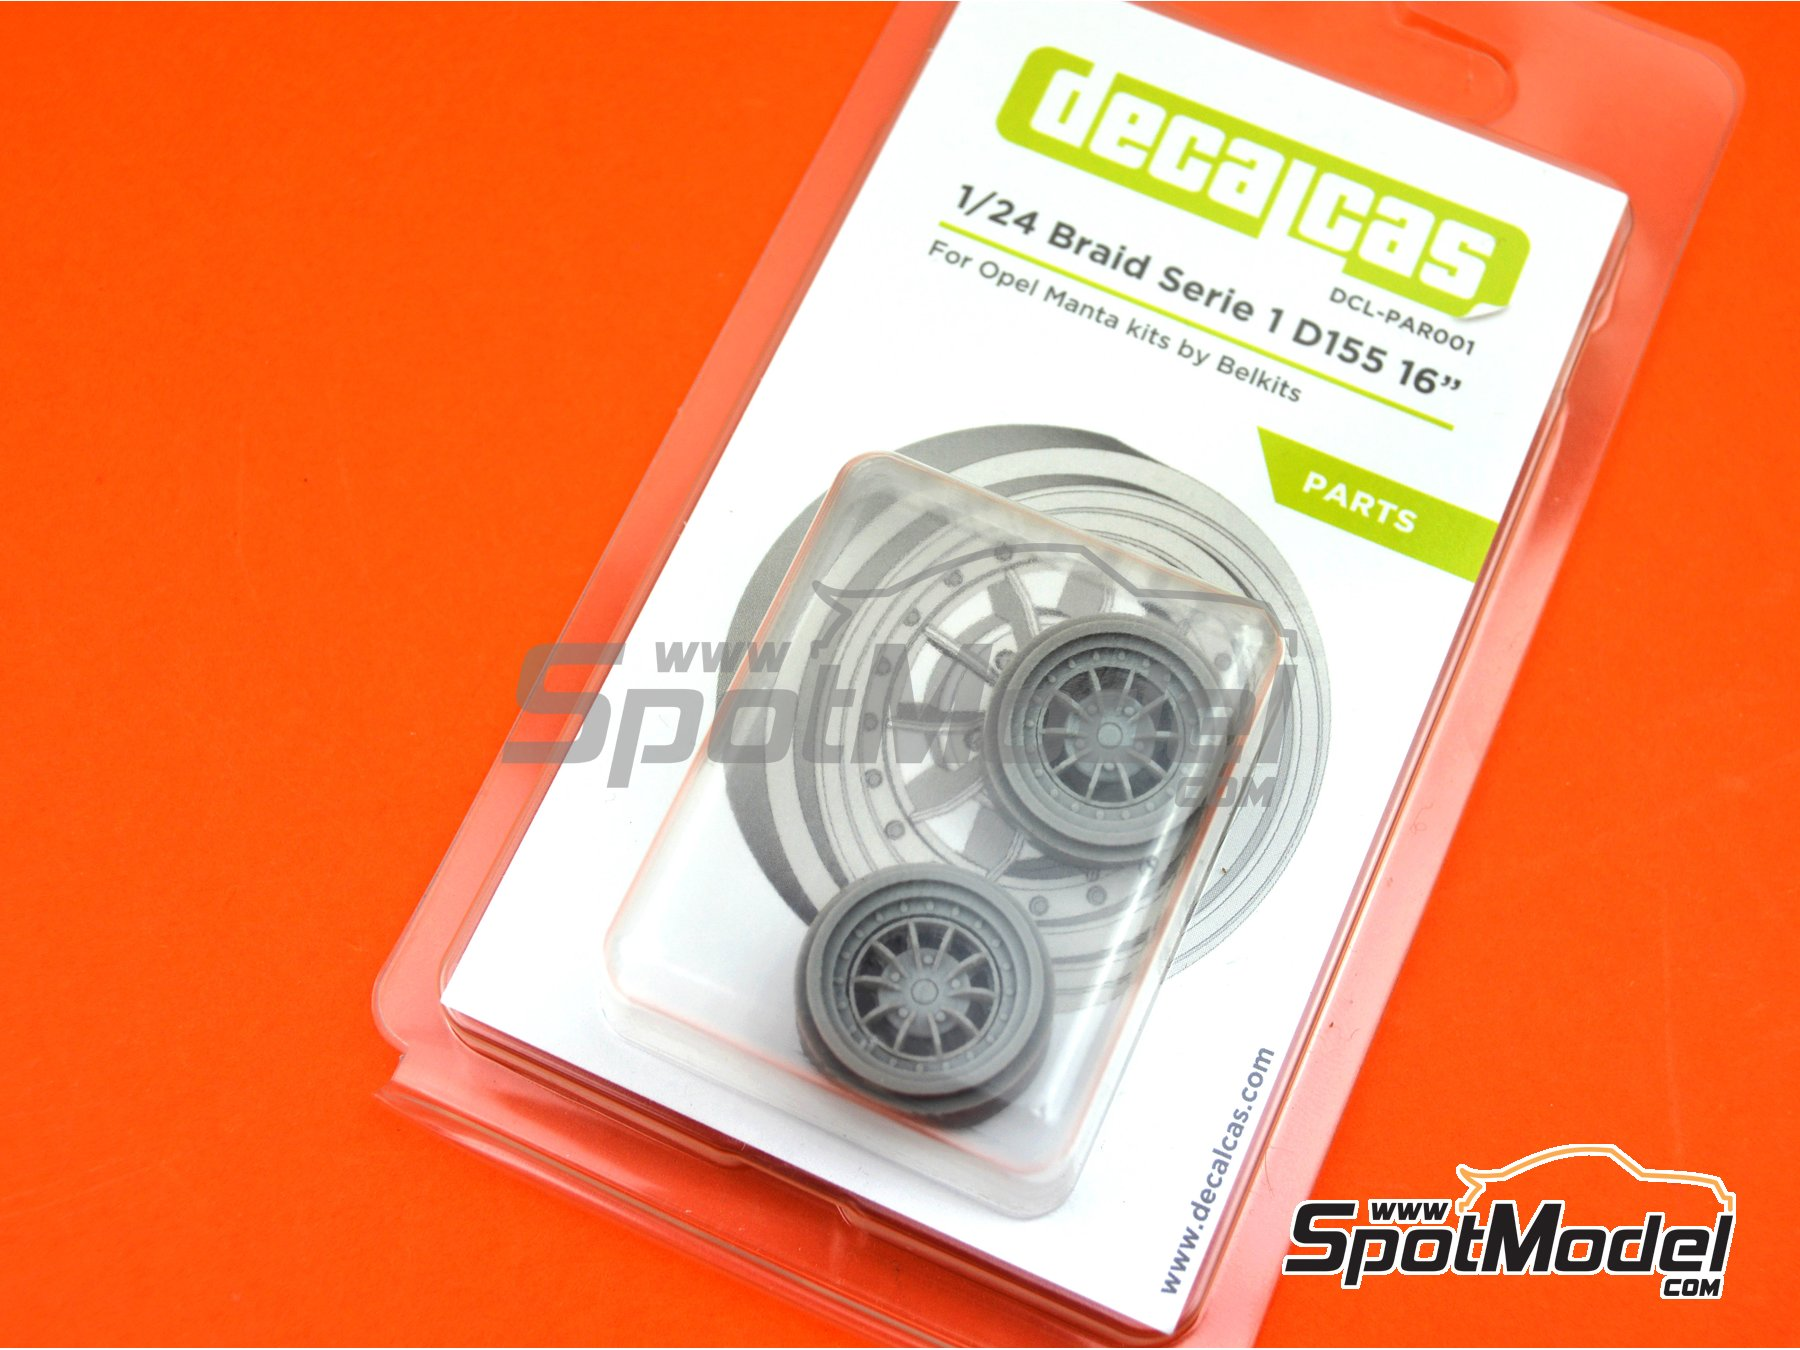 Image 10: Braid Serie 1 D155 16 inches   Rims in 1/24 scale manufactured by Decalcas (ref.DCL-PAR001)